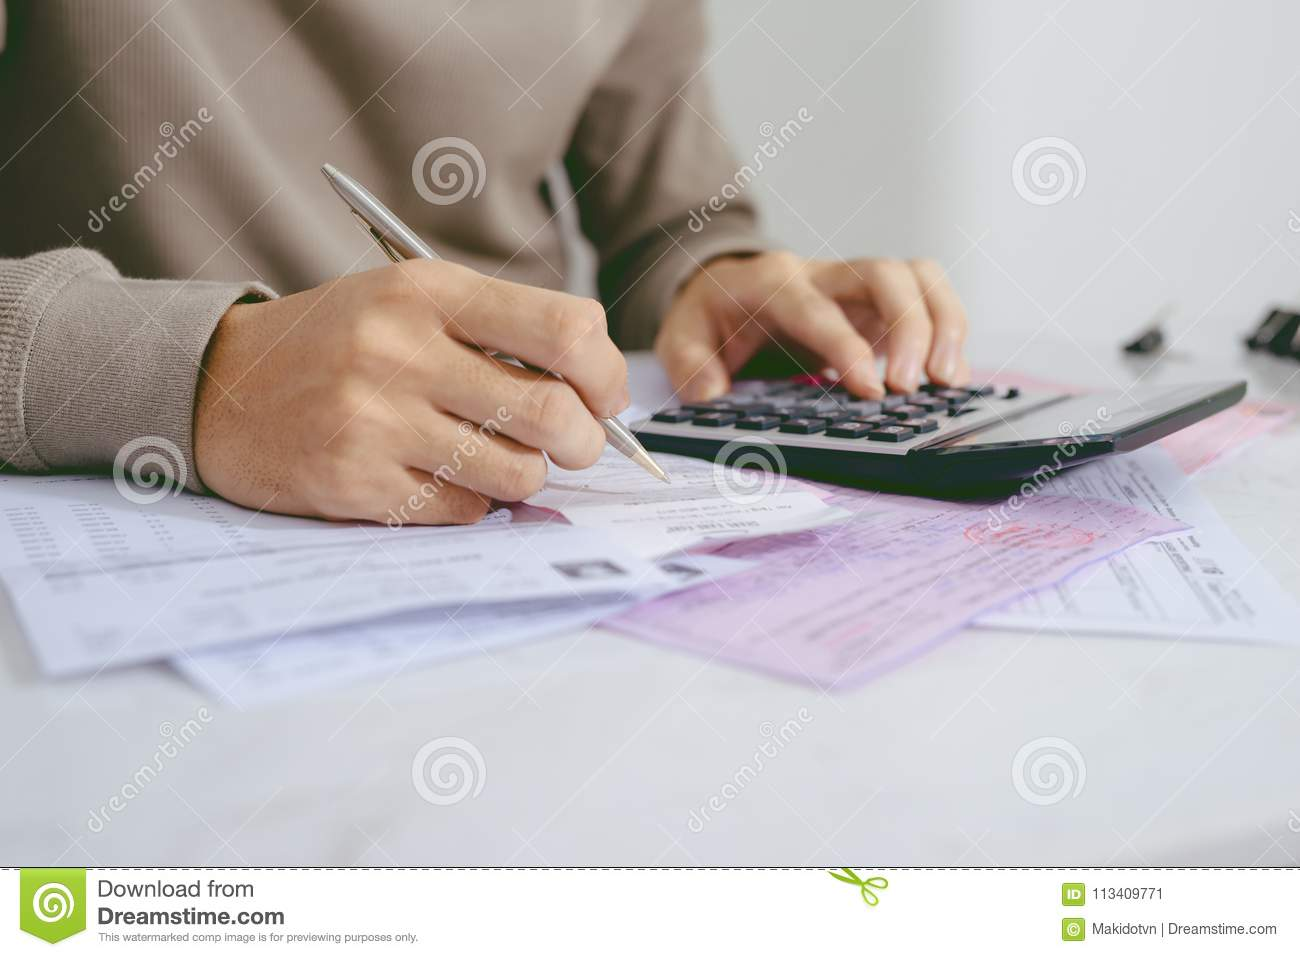 Hand man doing finances and calculate on desk about cost at home